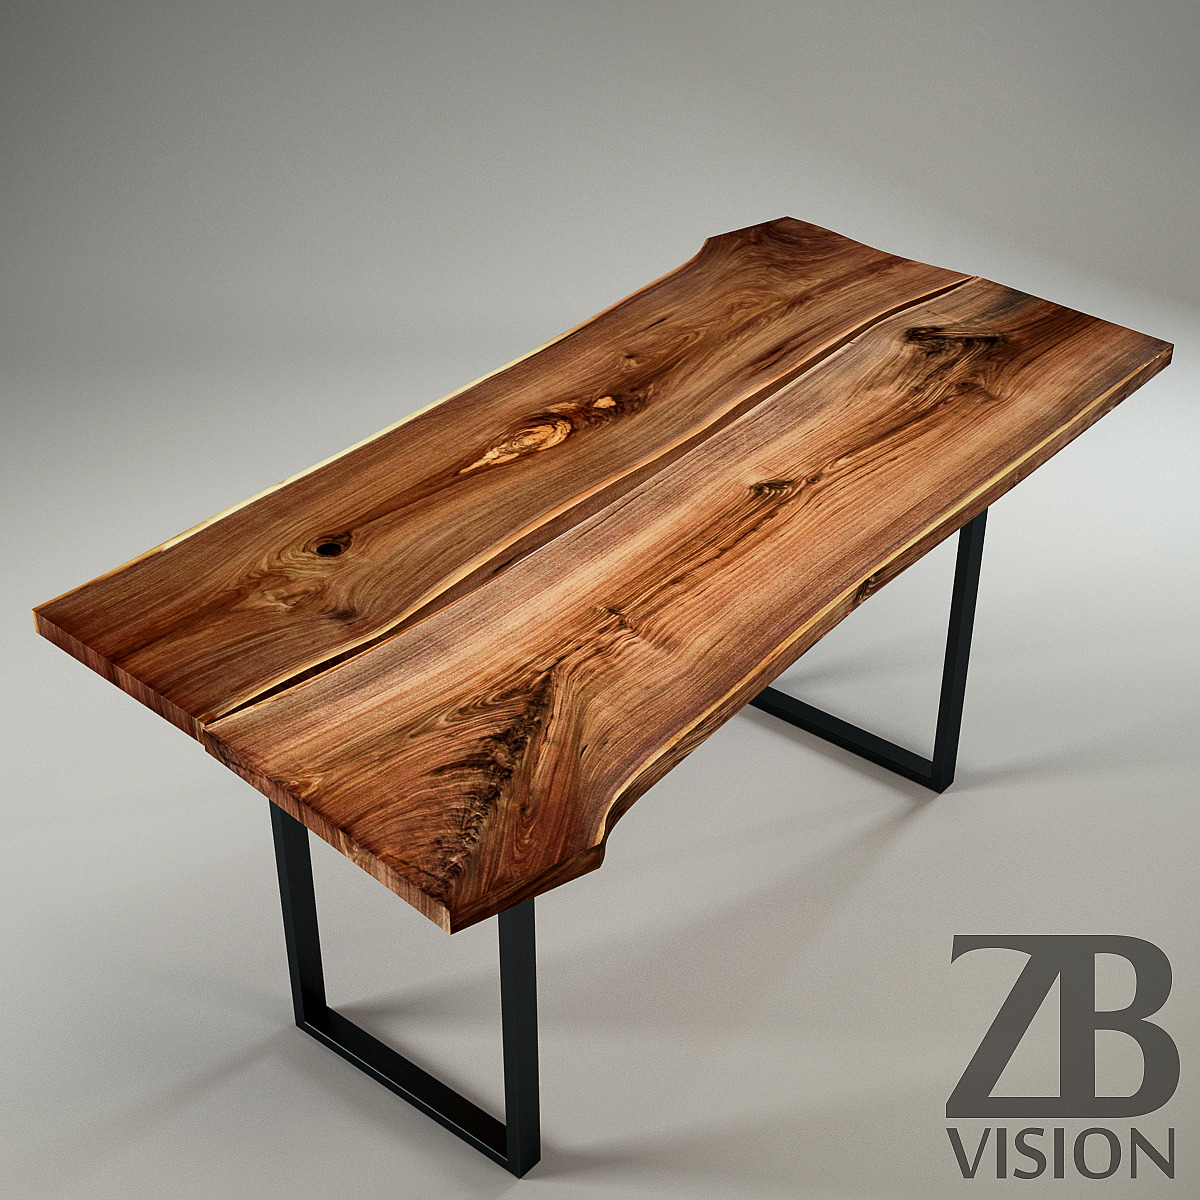 wood slab table by ign design switzerland by luckyfox 3docean. Black Bedroom Furniture Sets. Home Design Ideas